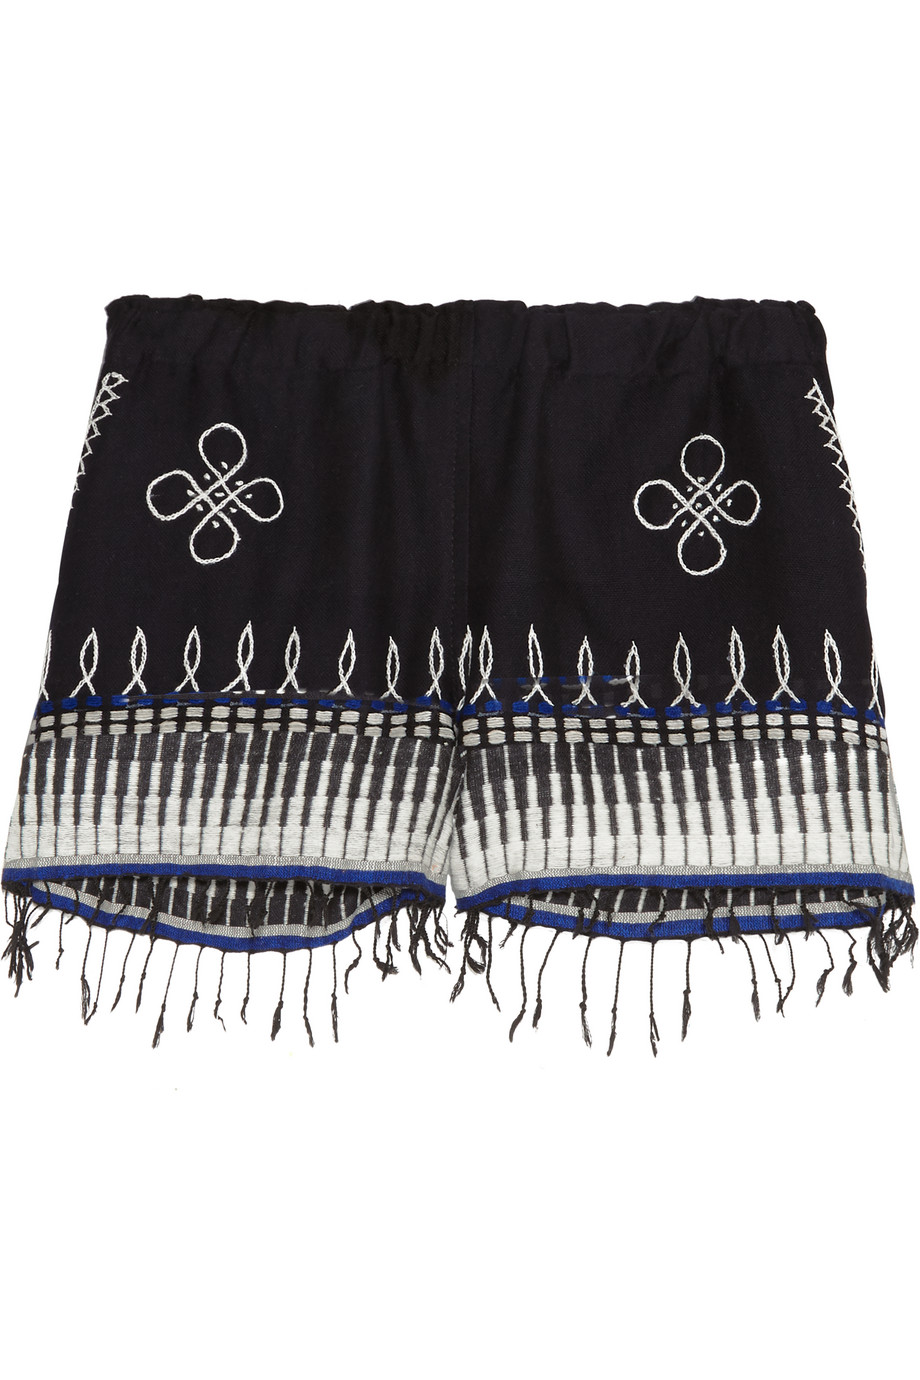 Lemlem Wubit Fringed Embroidered Cotton-Blend Shorts, Midnight Blue, Women's